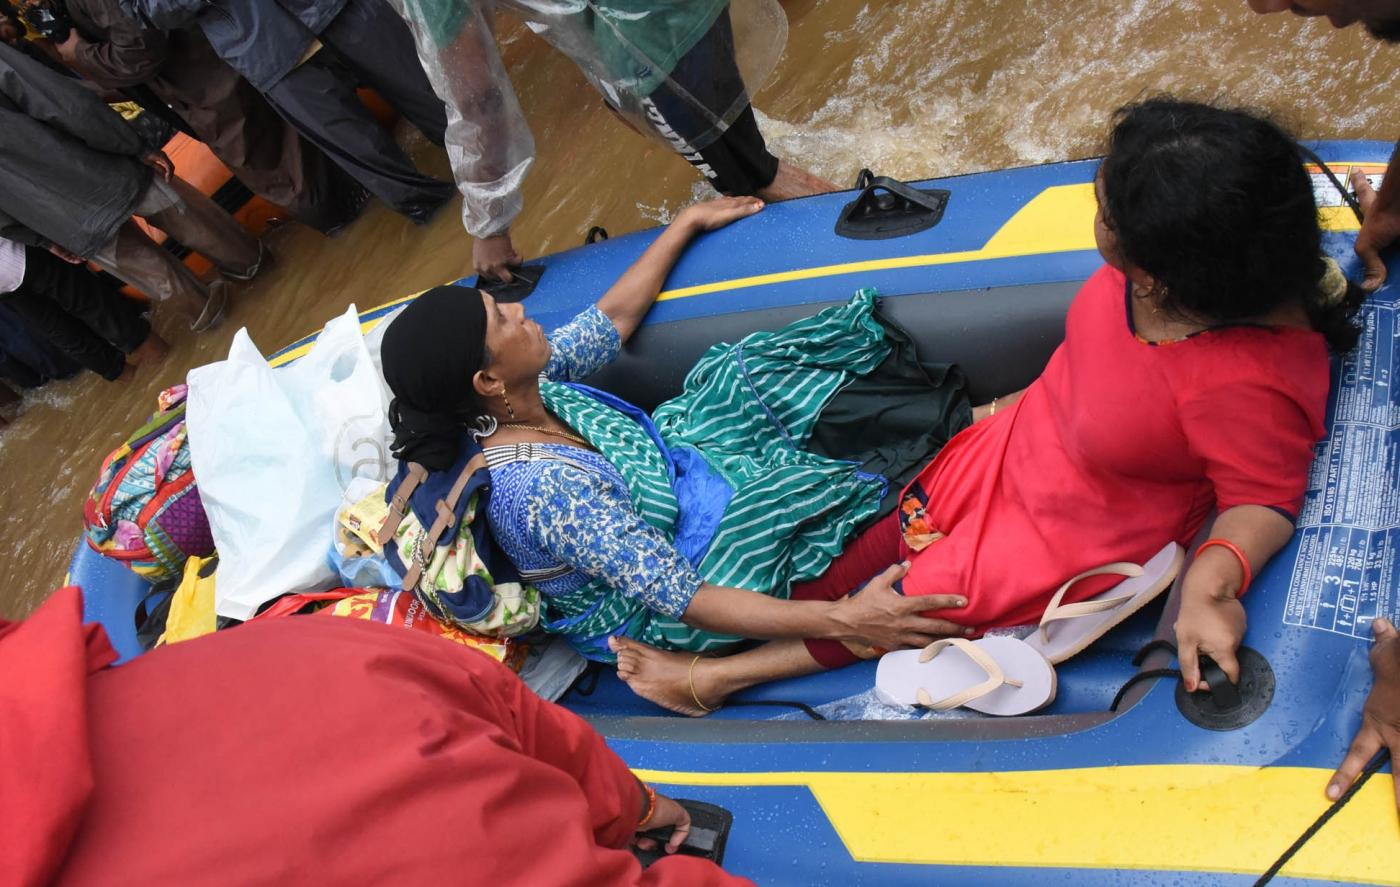 Kochi: Rescue operations underway in Kochi, Kerala on Aug 18, 2018. (Photo: IANS) by .